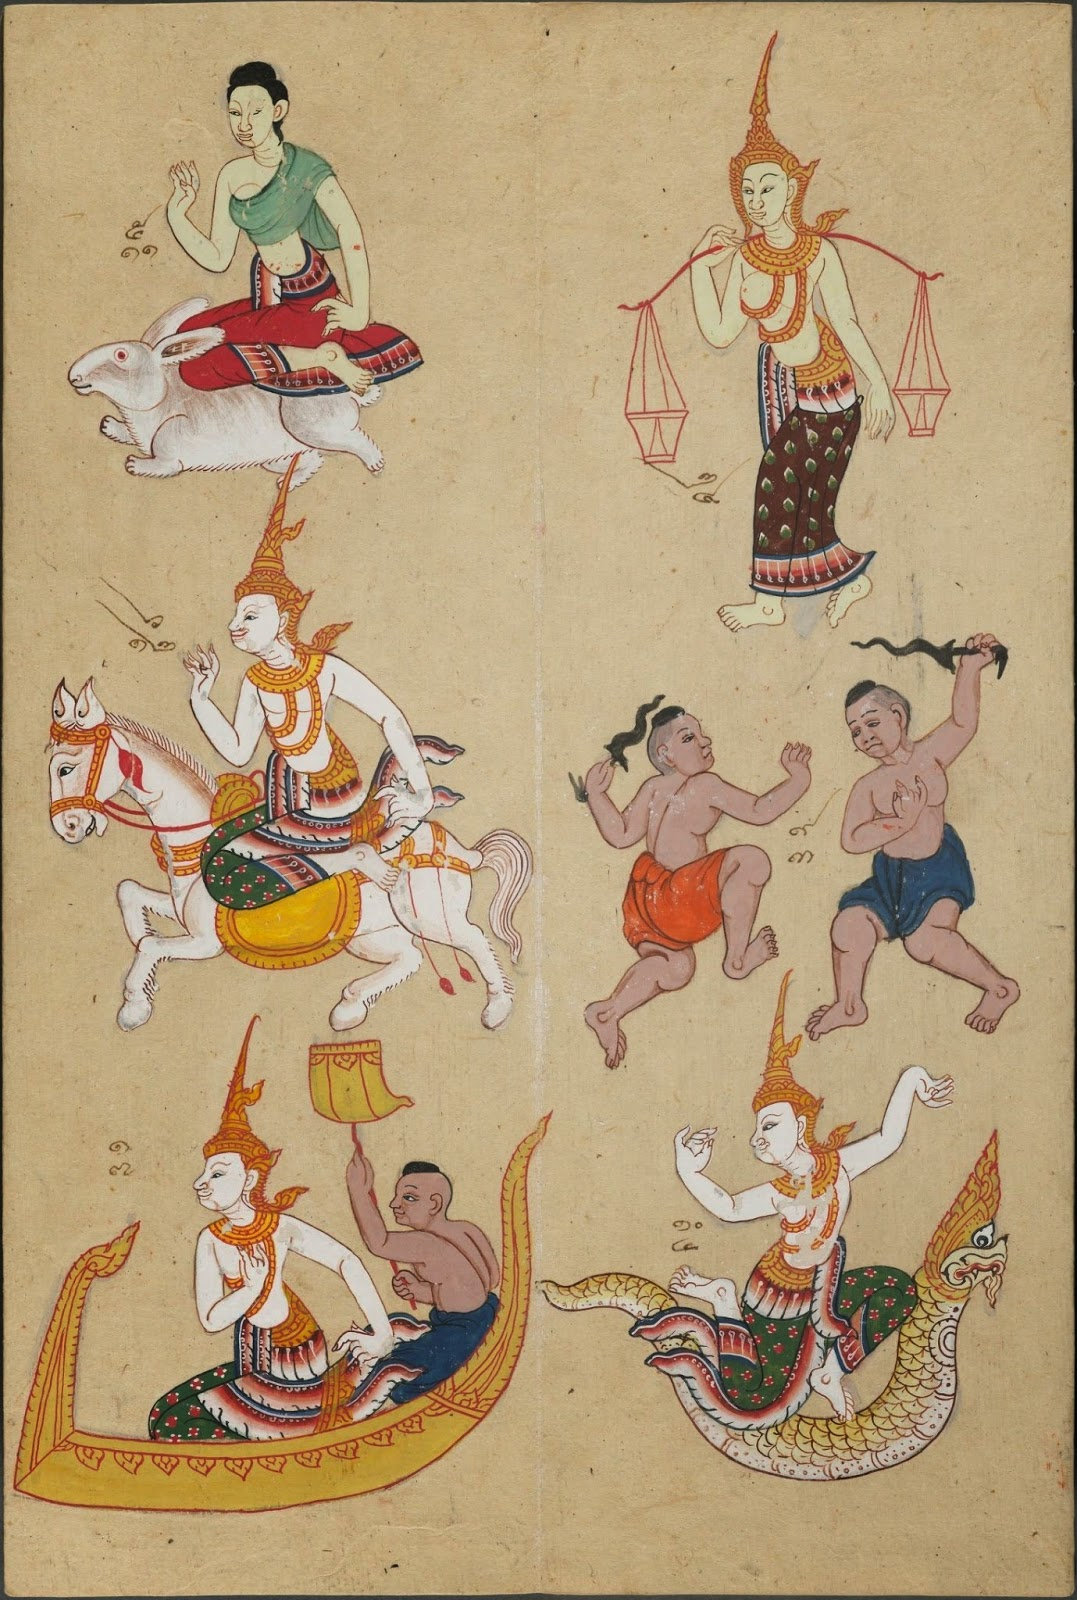 assortment of coloured drawings of Thai people, gods & animals from zodiac astrological system